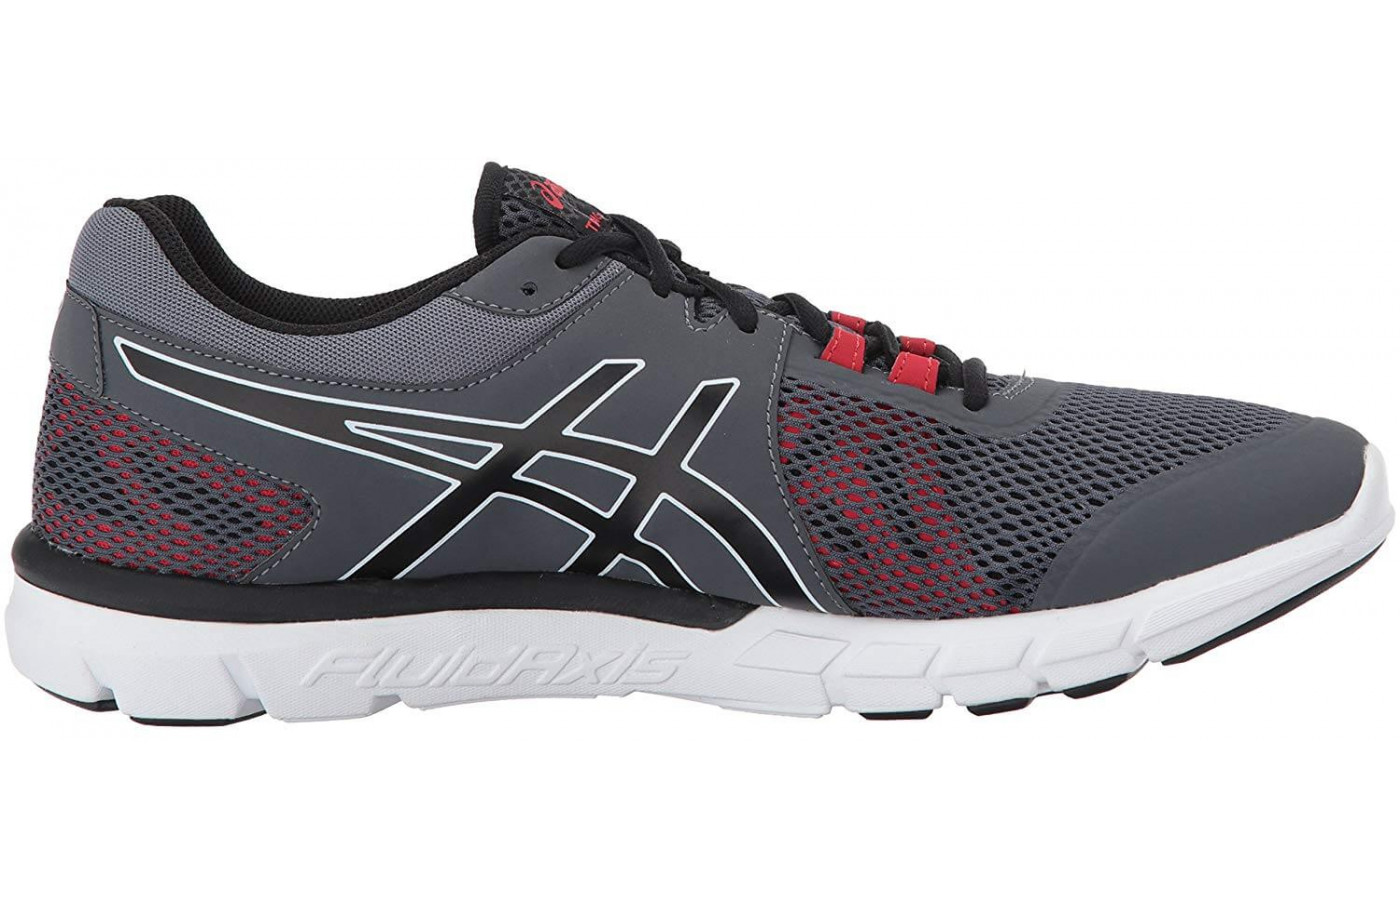 FluidRide and Gel technologies allow the Gel Craze TR 4's midsole to completely absorb each impact